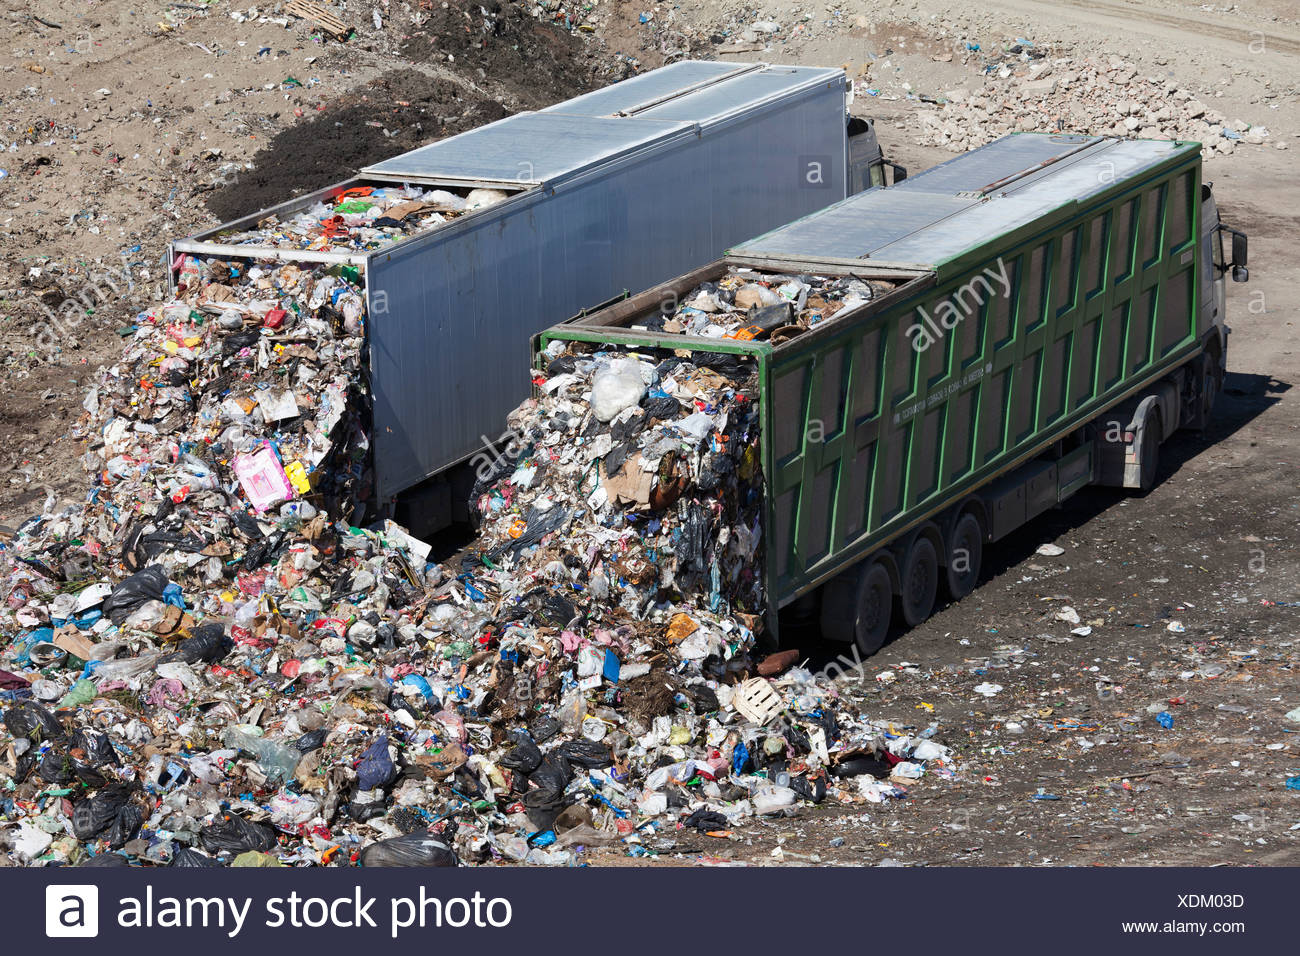 Trucks dumping waste in landfill - Stock Image